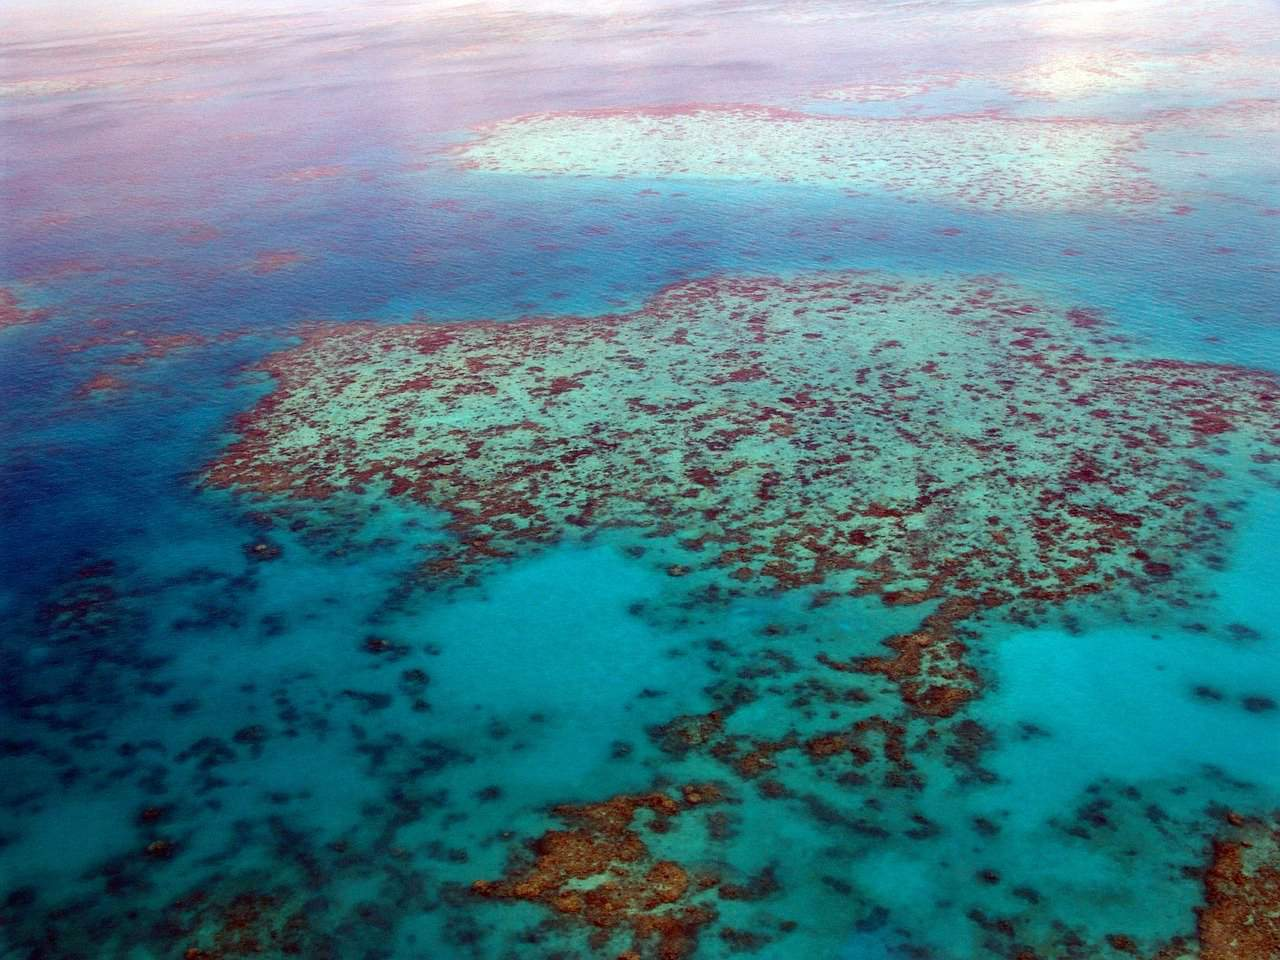 Scuba diving in the Great Barrier Reef has been on my travel bucket list since I was a teenager